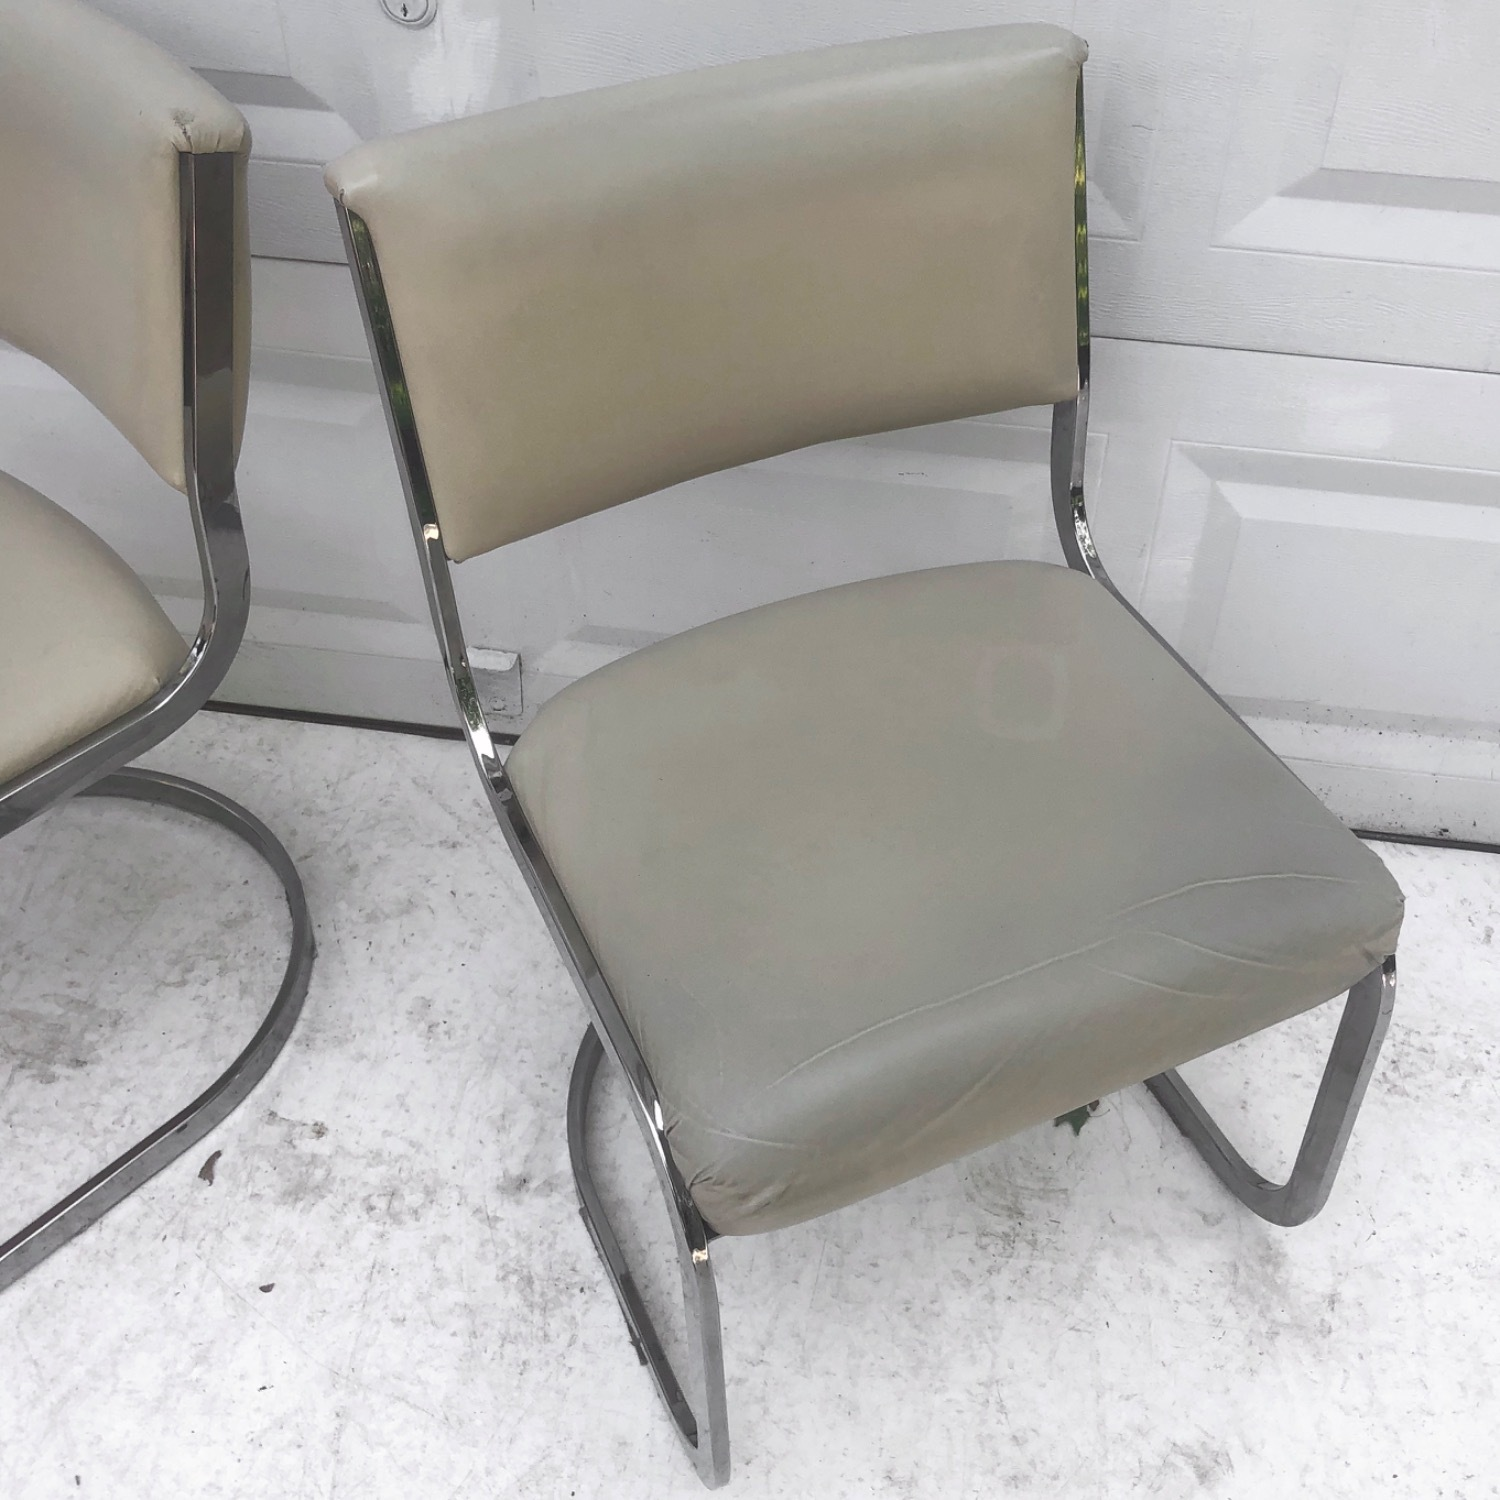 Vintage Modern Dining Chairs Set of 8 - image-11